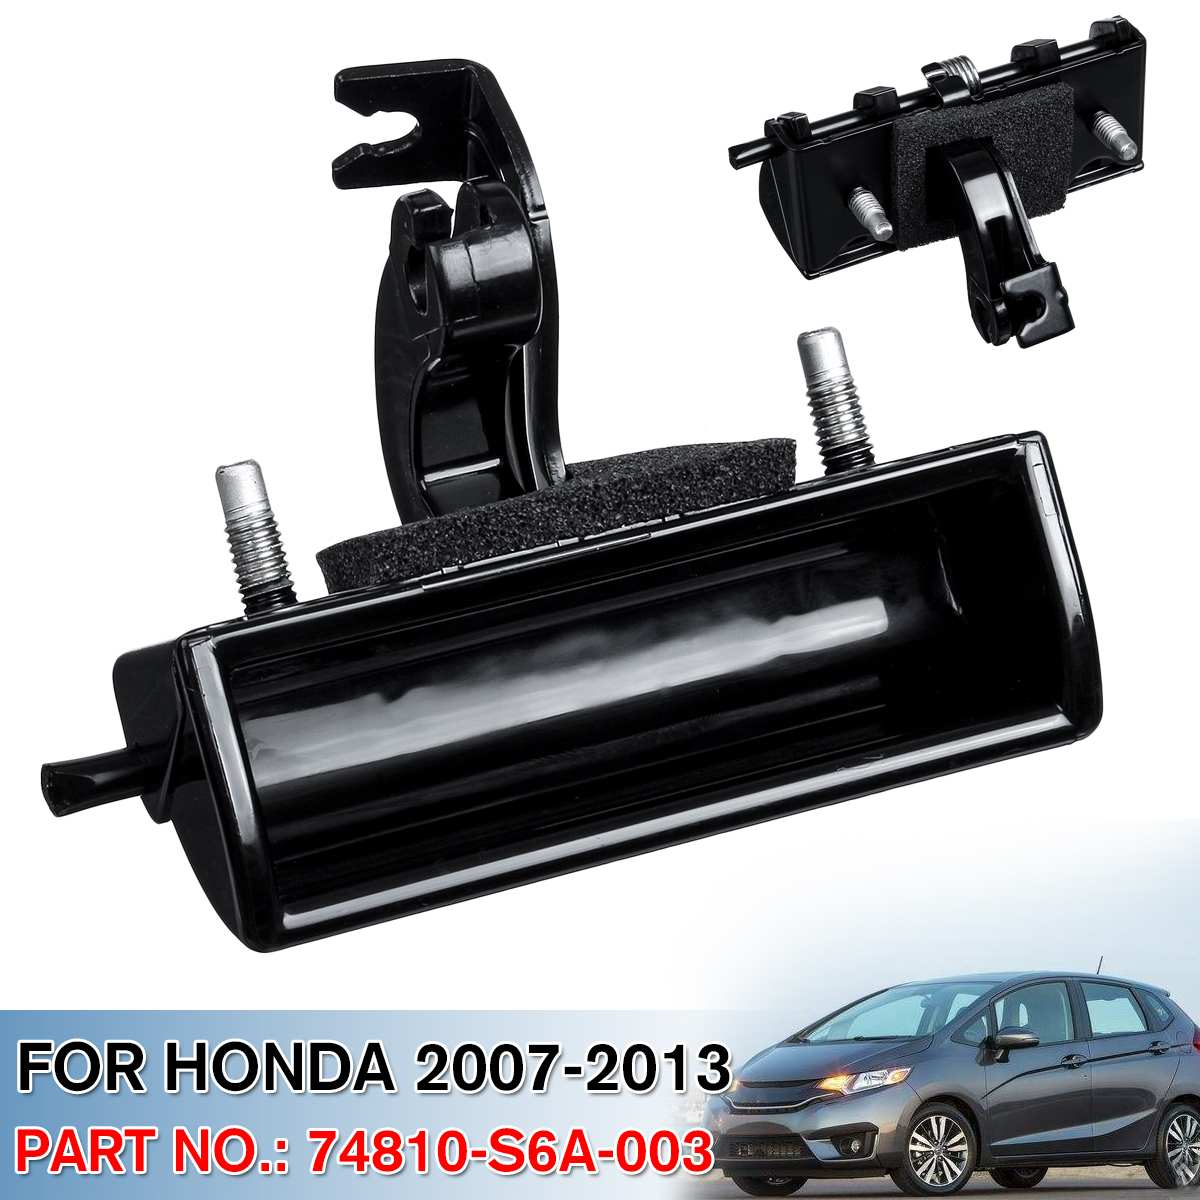 NEW 1PCS Black Liftgate Tailgate Hatch-Handle For Honda Fit 2007-2013 OEM  74810-S6A-003